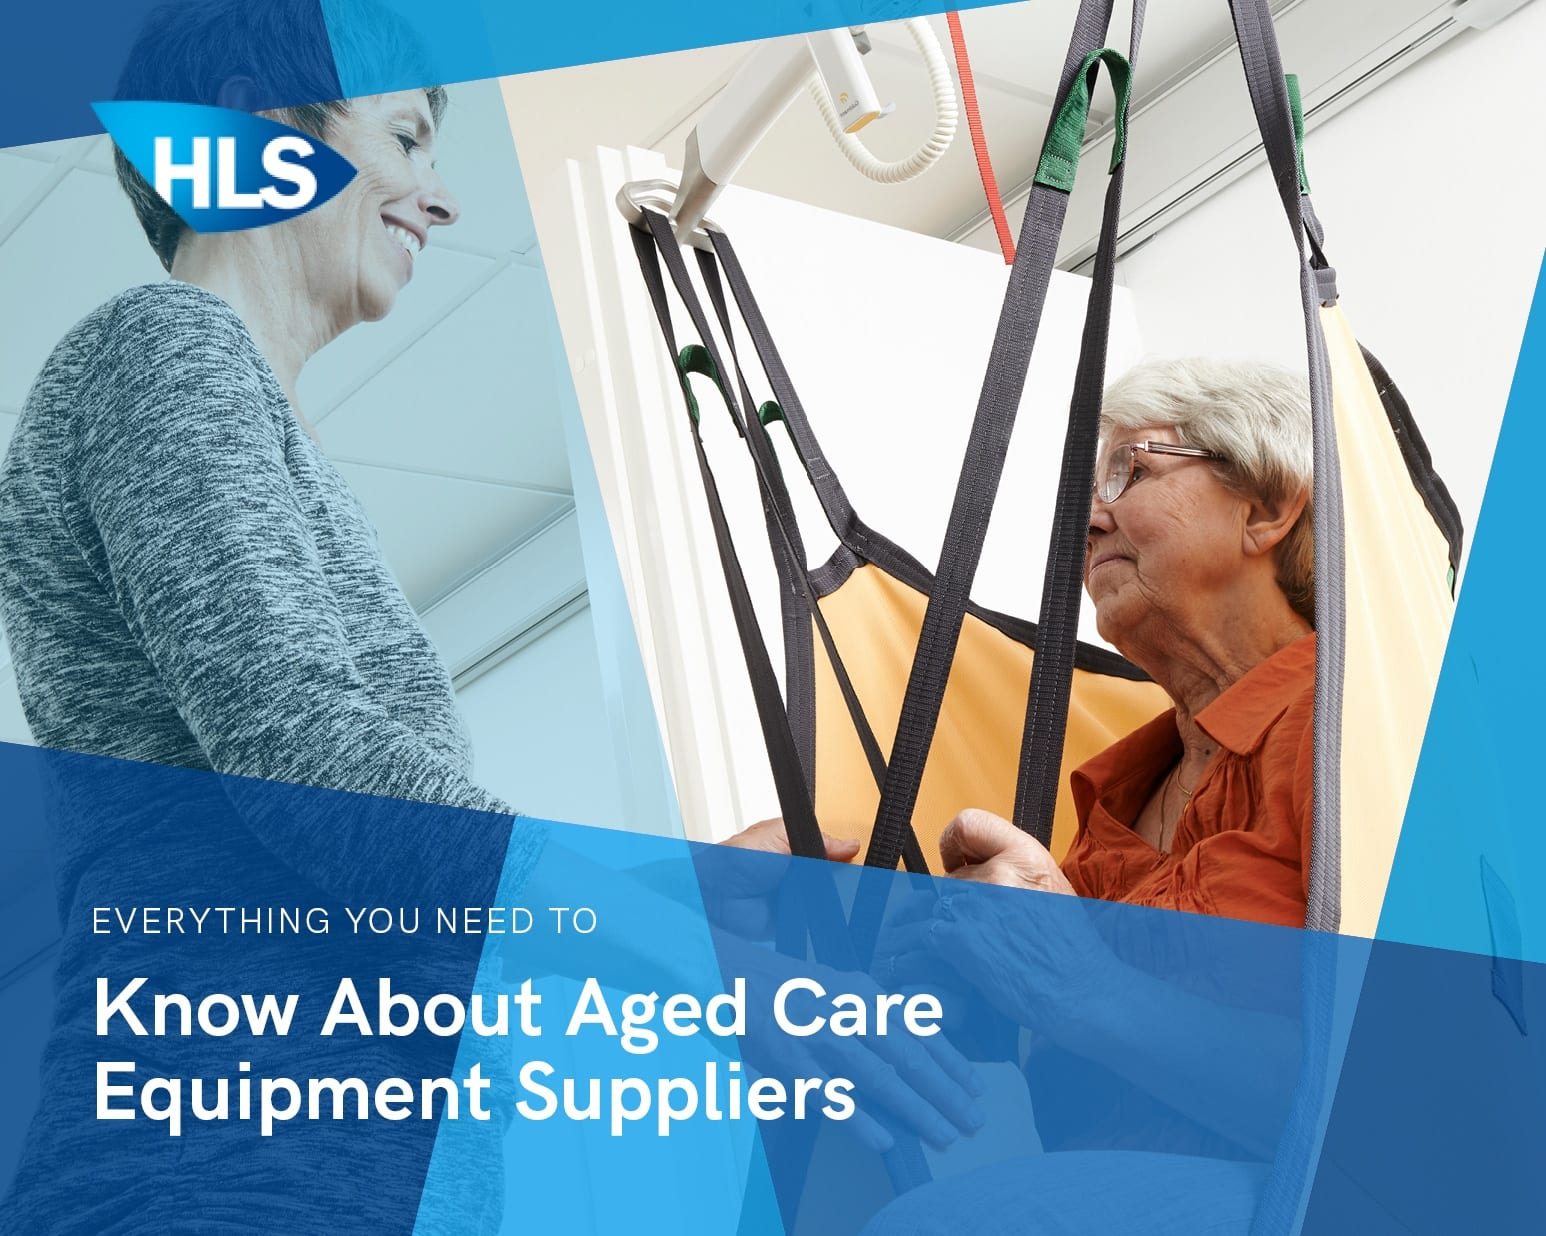 Everything you Need to Know About Aged Care Equipment Suppliers